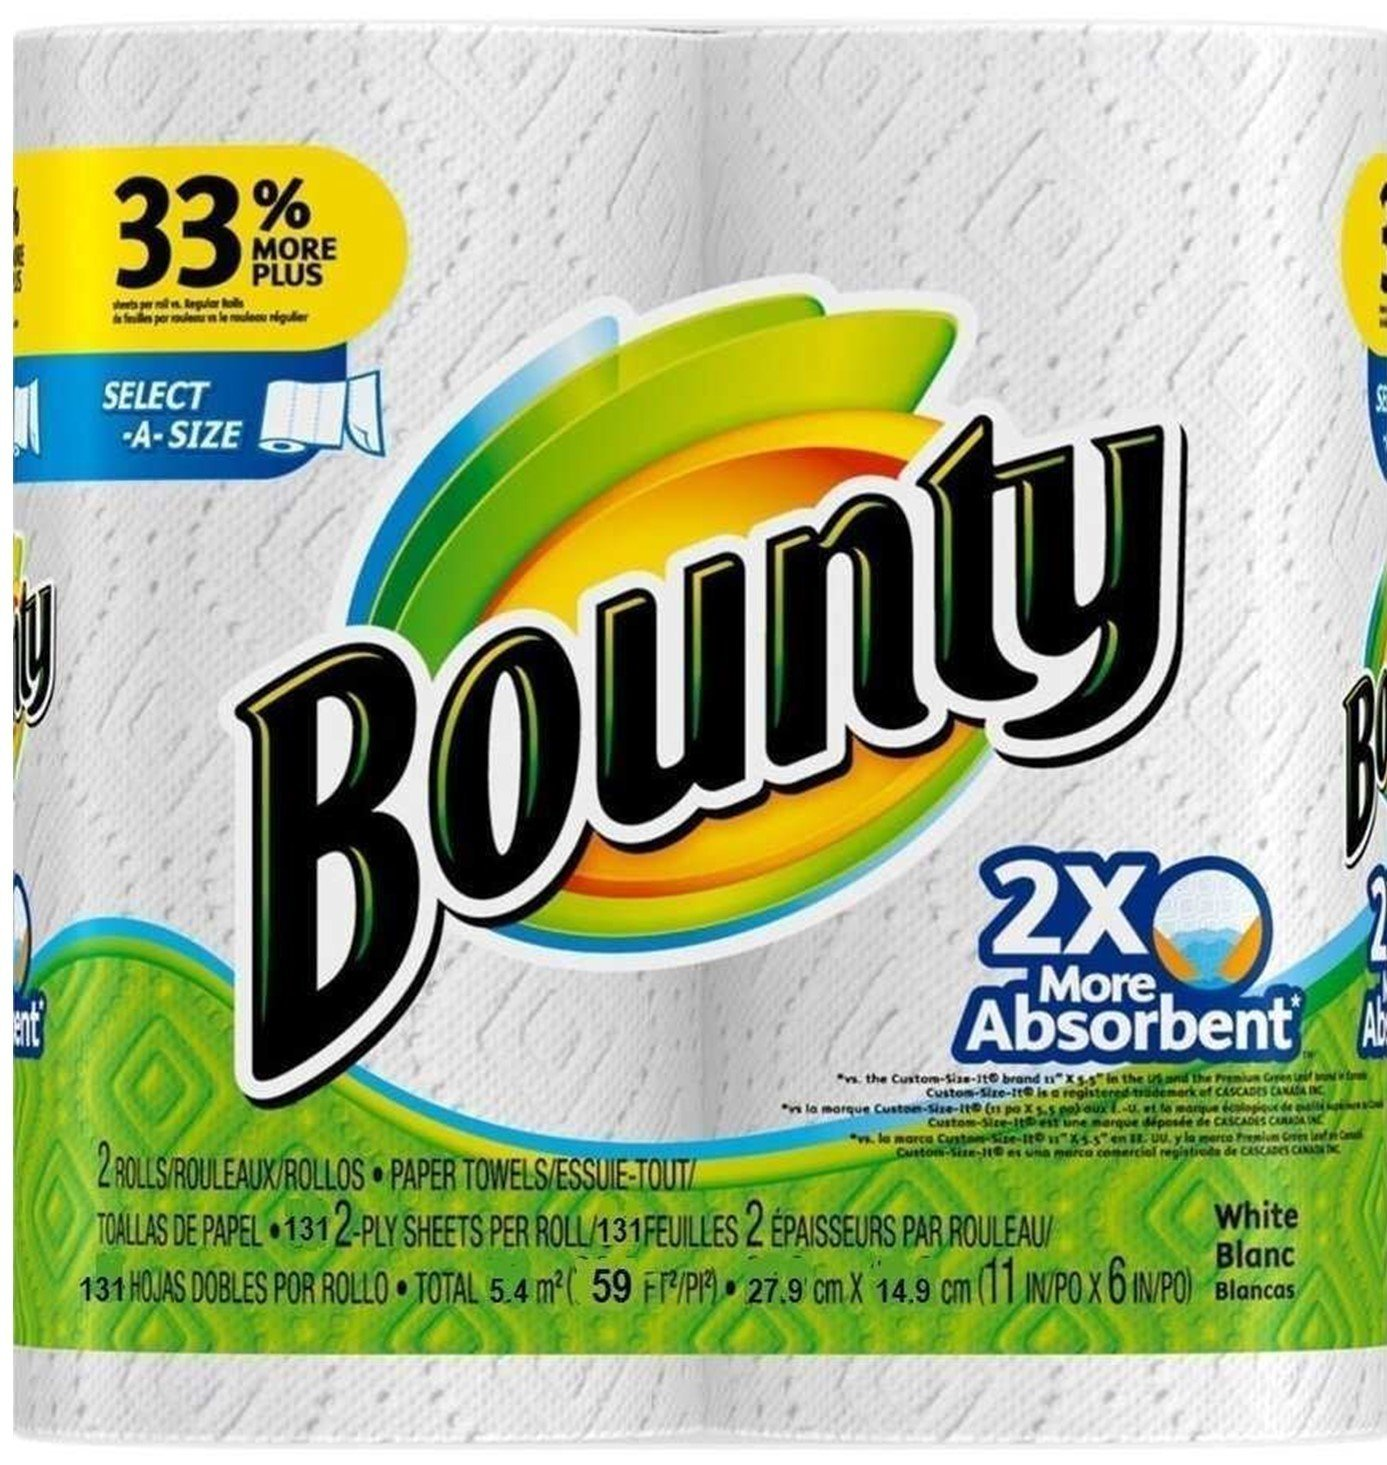 Bounty Select-a-Size 2 x More Absorbent Paper Towels,11 x 5.9